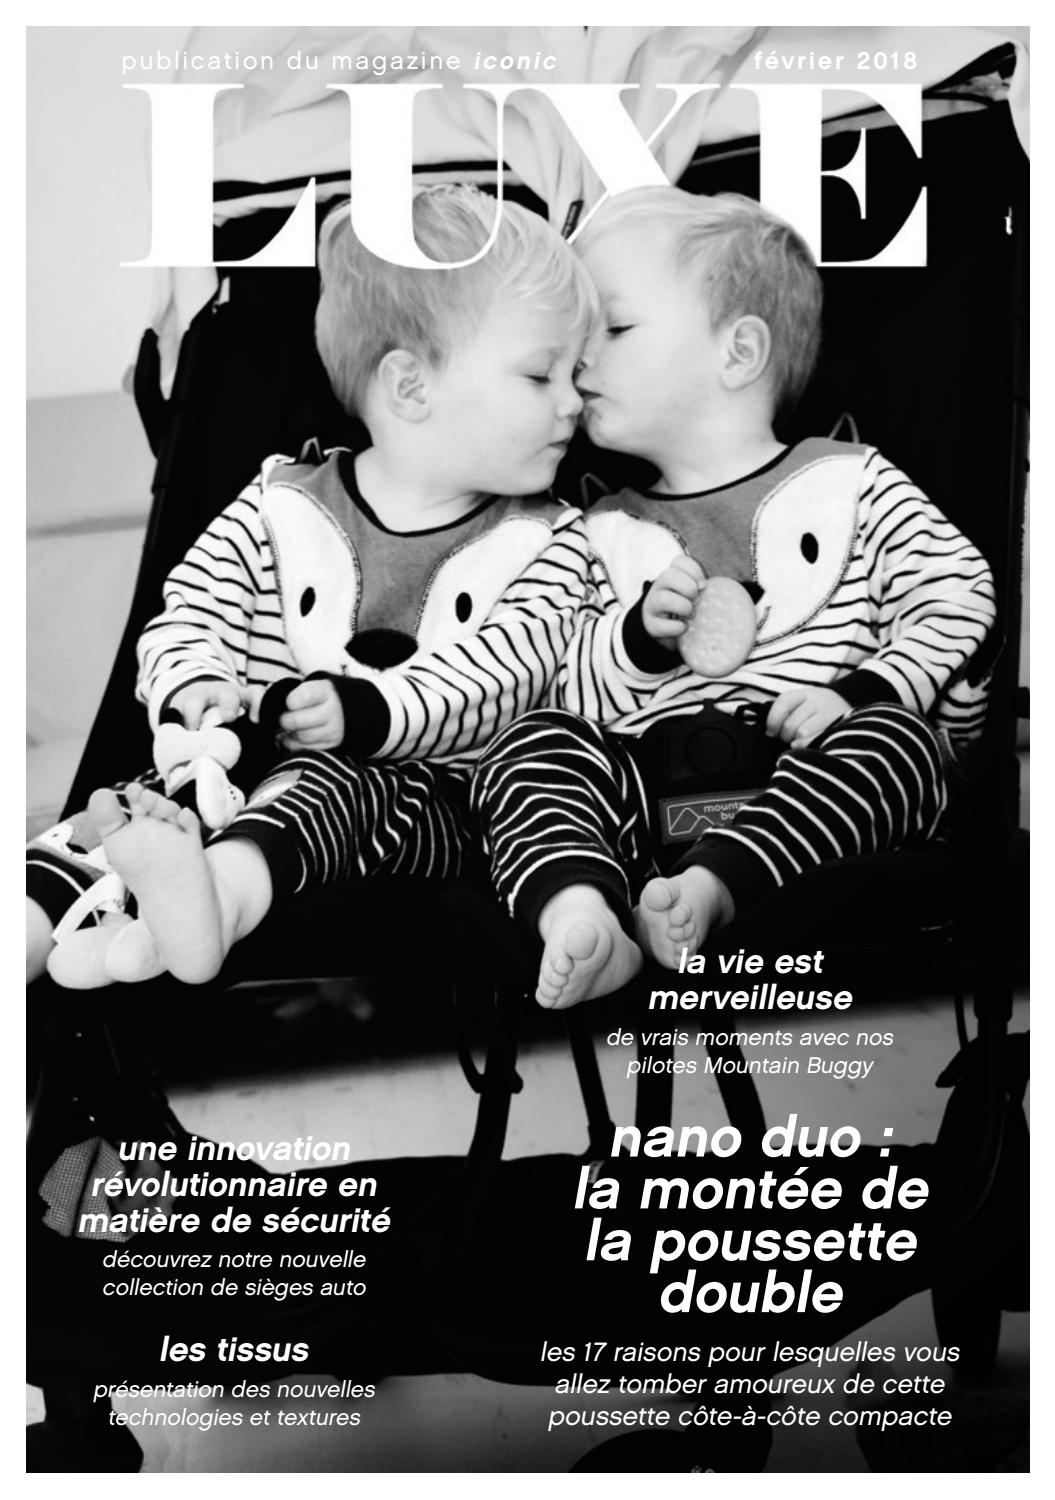 Mountain Buggy Duet Pneu Luxe Publication Du Magazine Iconic By Mountain Buggy Issuu